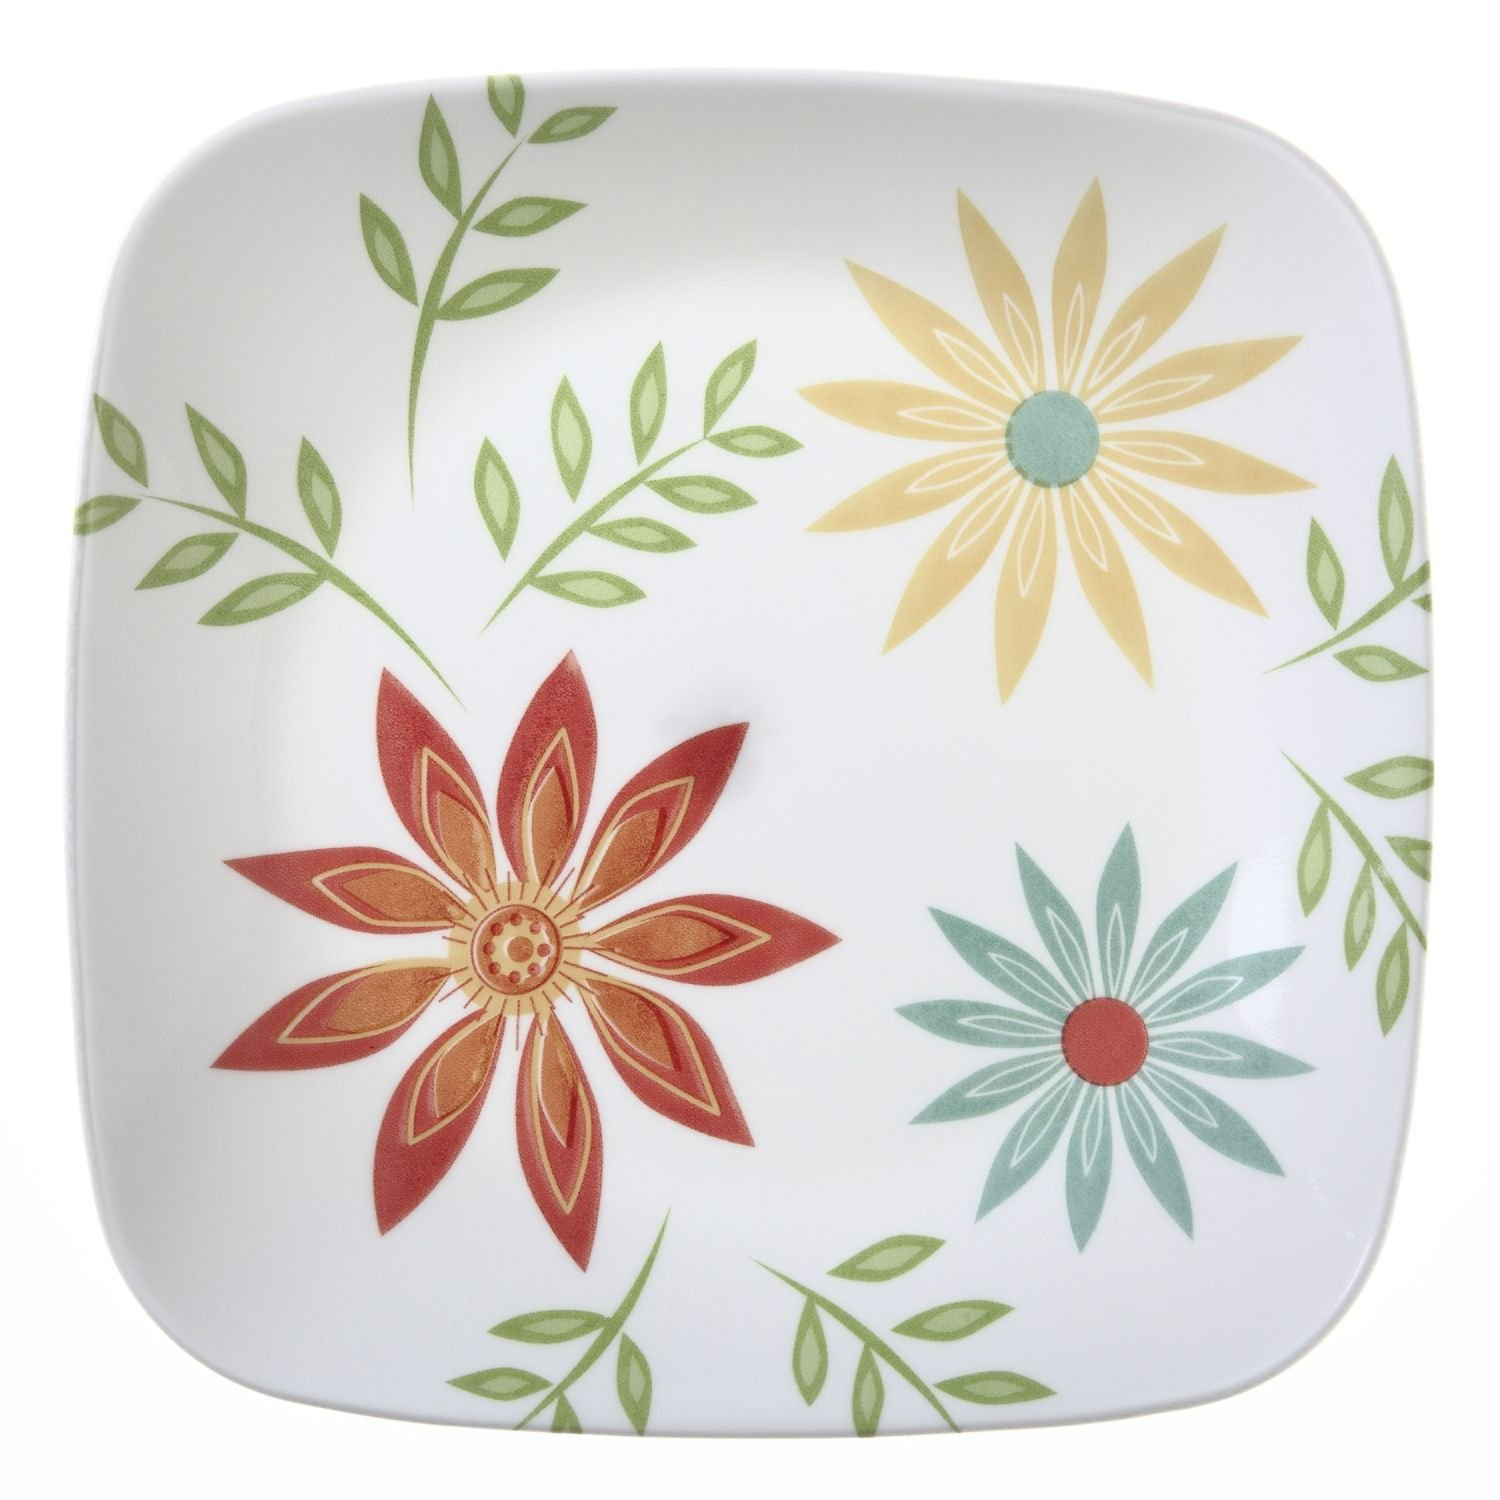 """Corelle Square Happy Days 8-3/4"""" Lunch Plate (Set of 12)"""